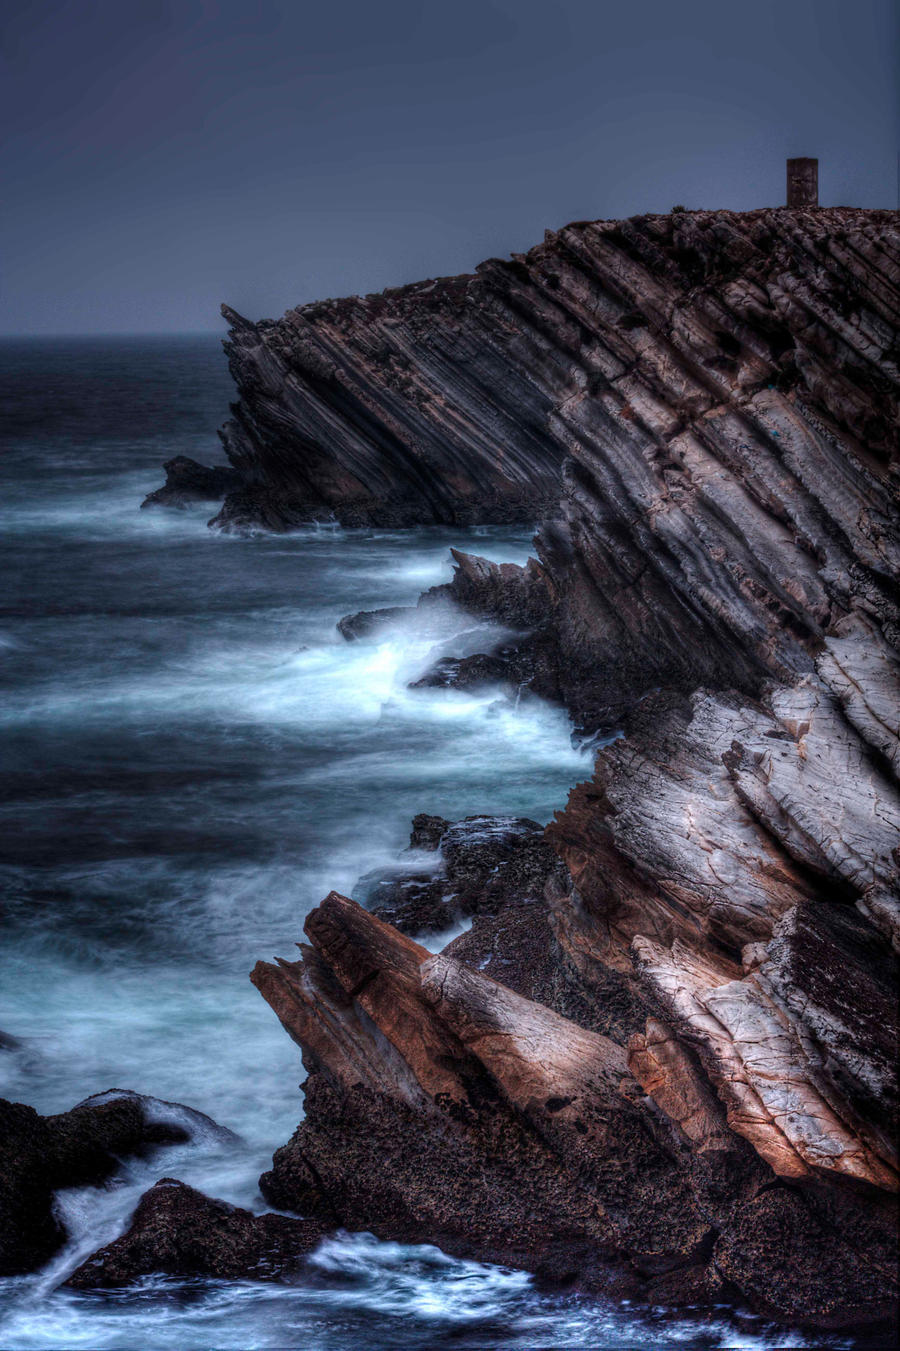 Atlantic cliff, Peniche, Portugal.